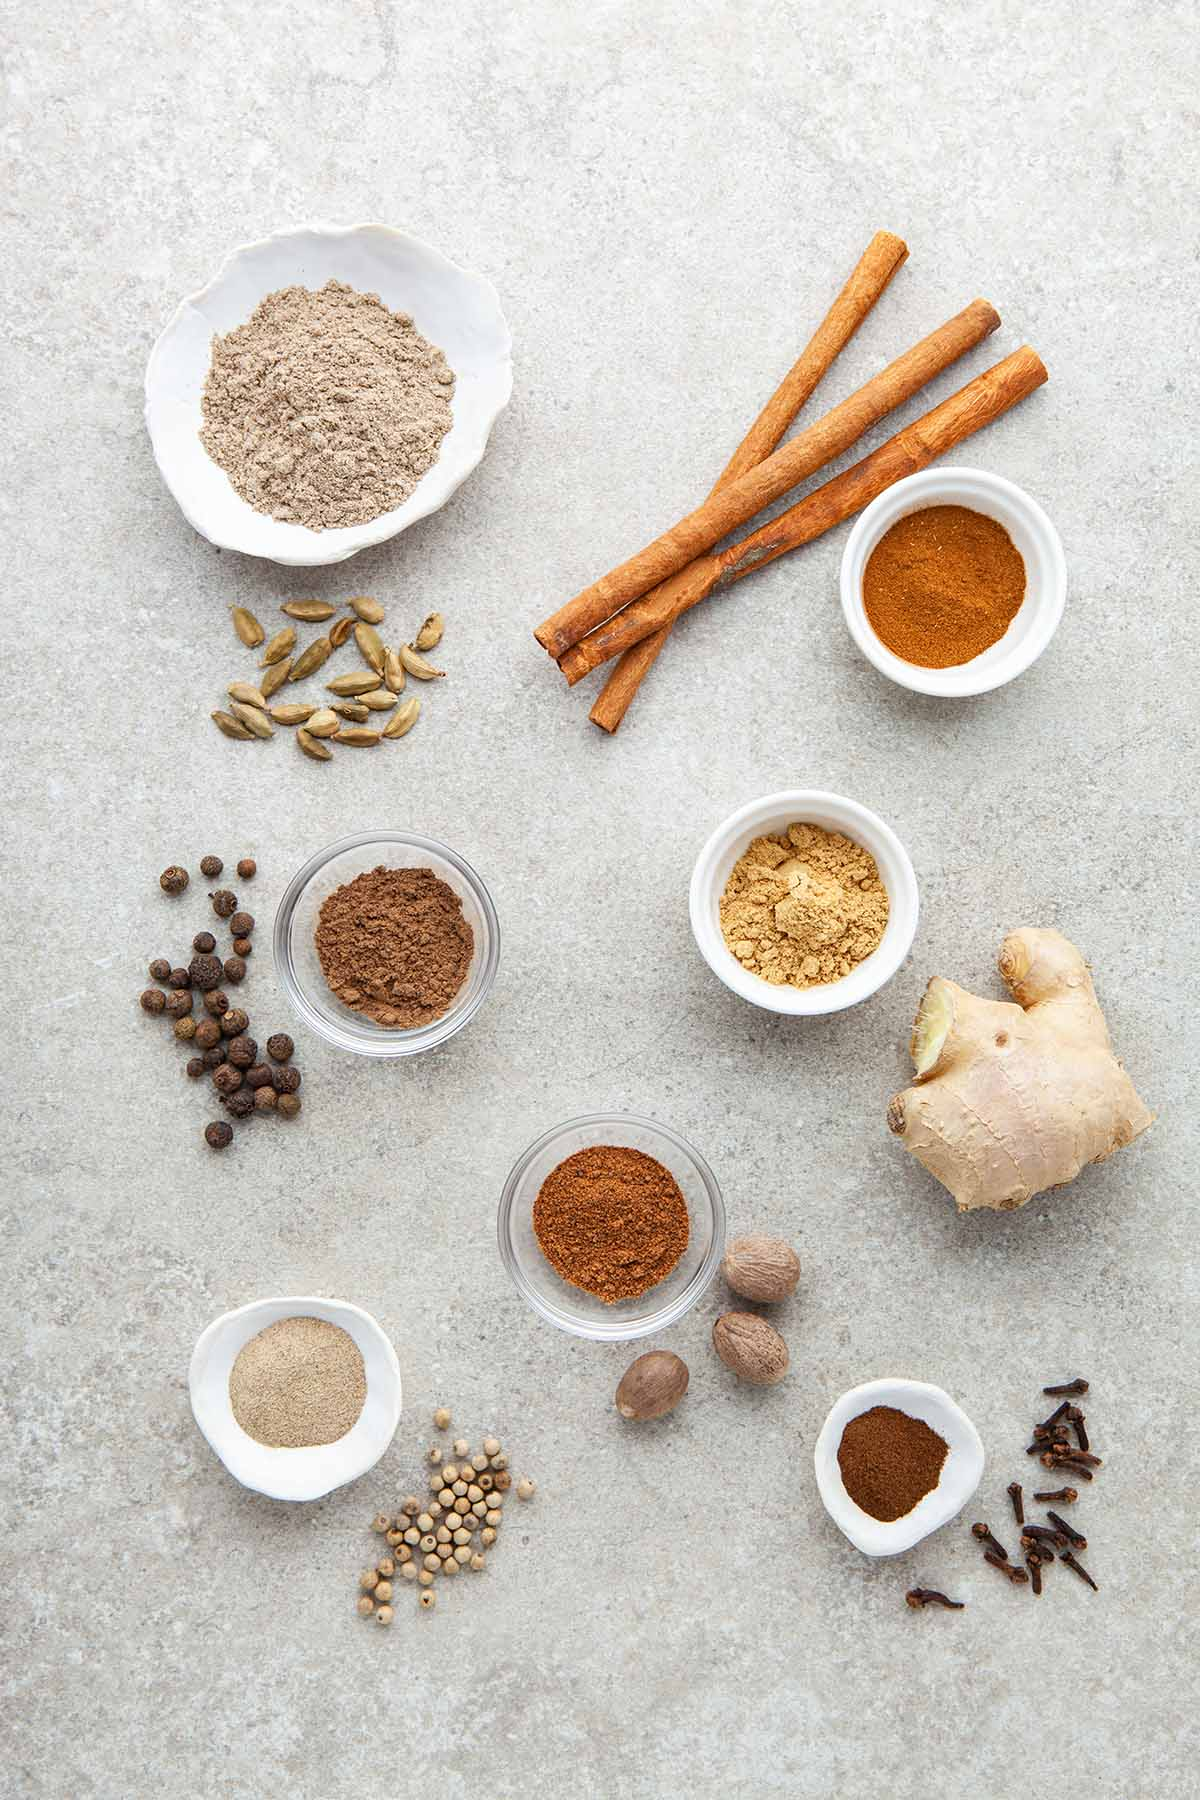 whole and ground ingredients to make homemade chai spice laid out on a stone surface.